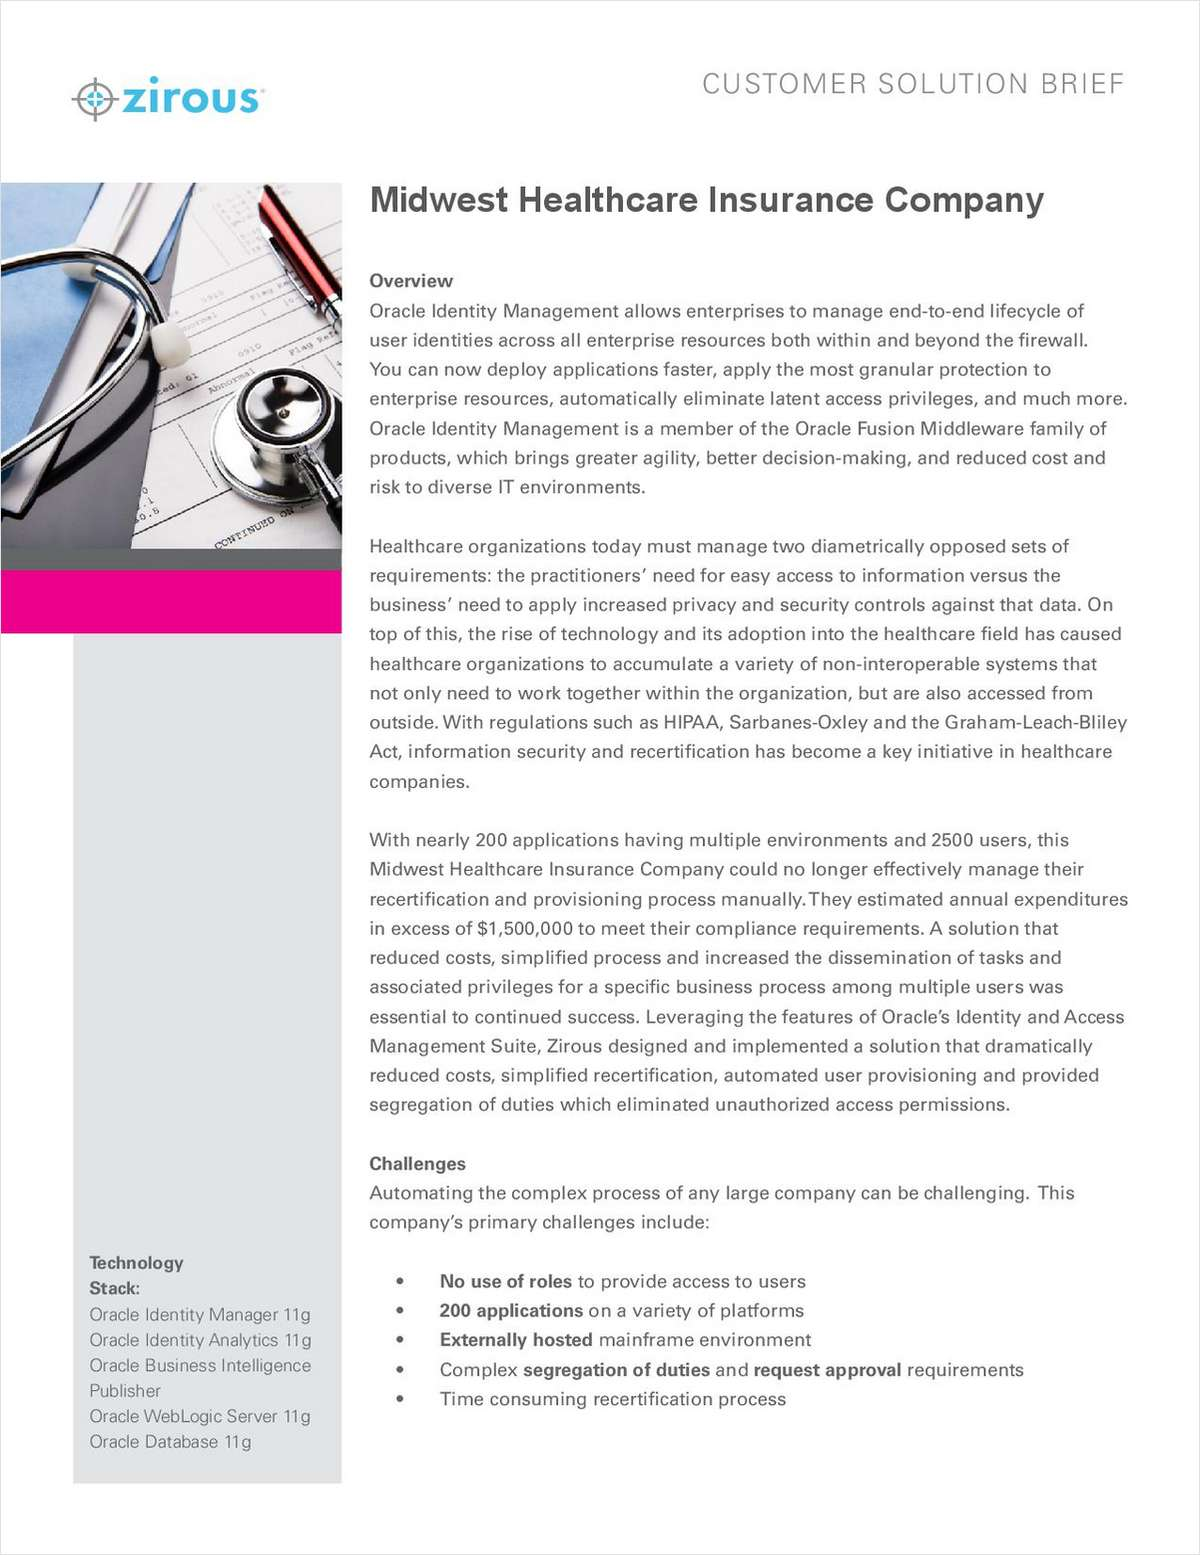 Using Oracle Identity Management: Midwest Healthcare Insurance Company Customer Solution Brief